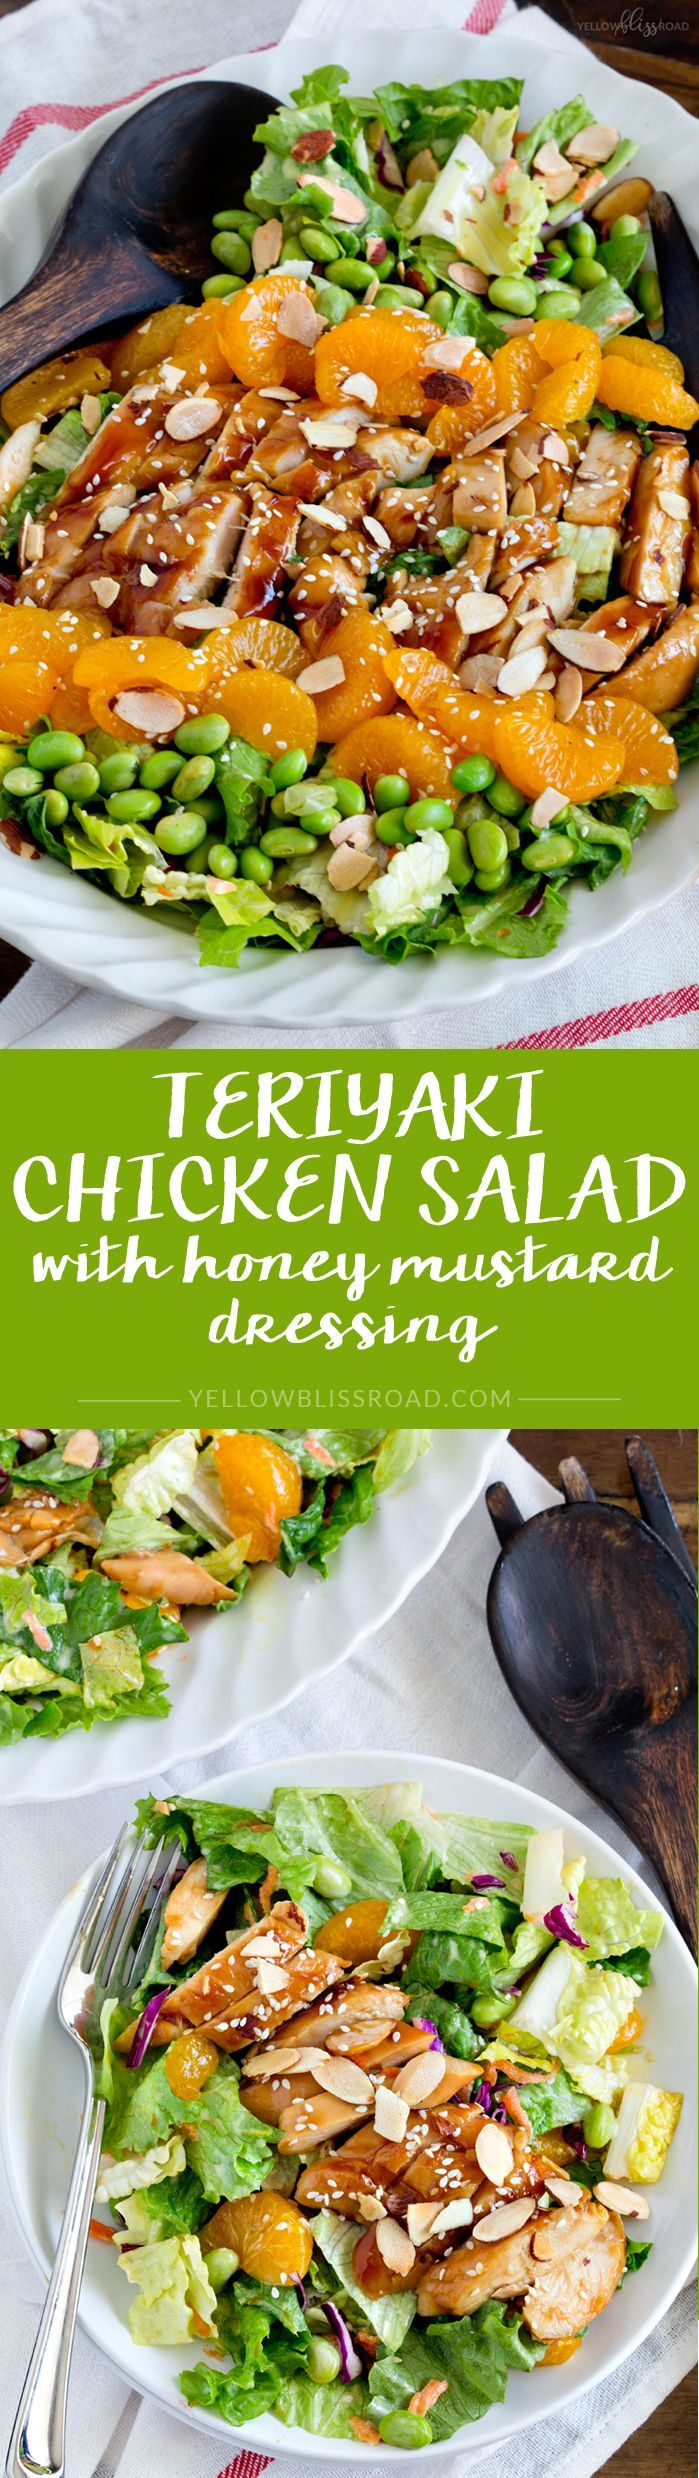 Red robin honey mustard dressing calories